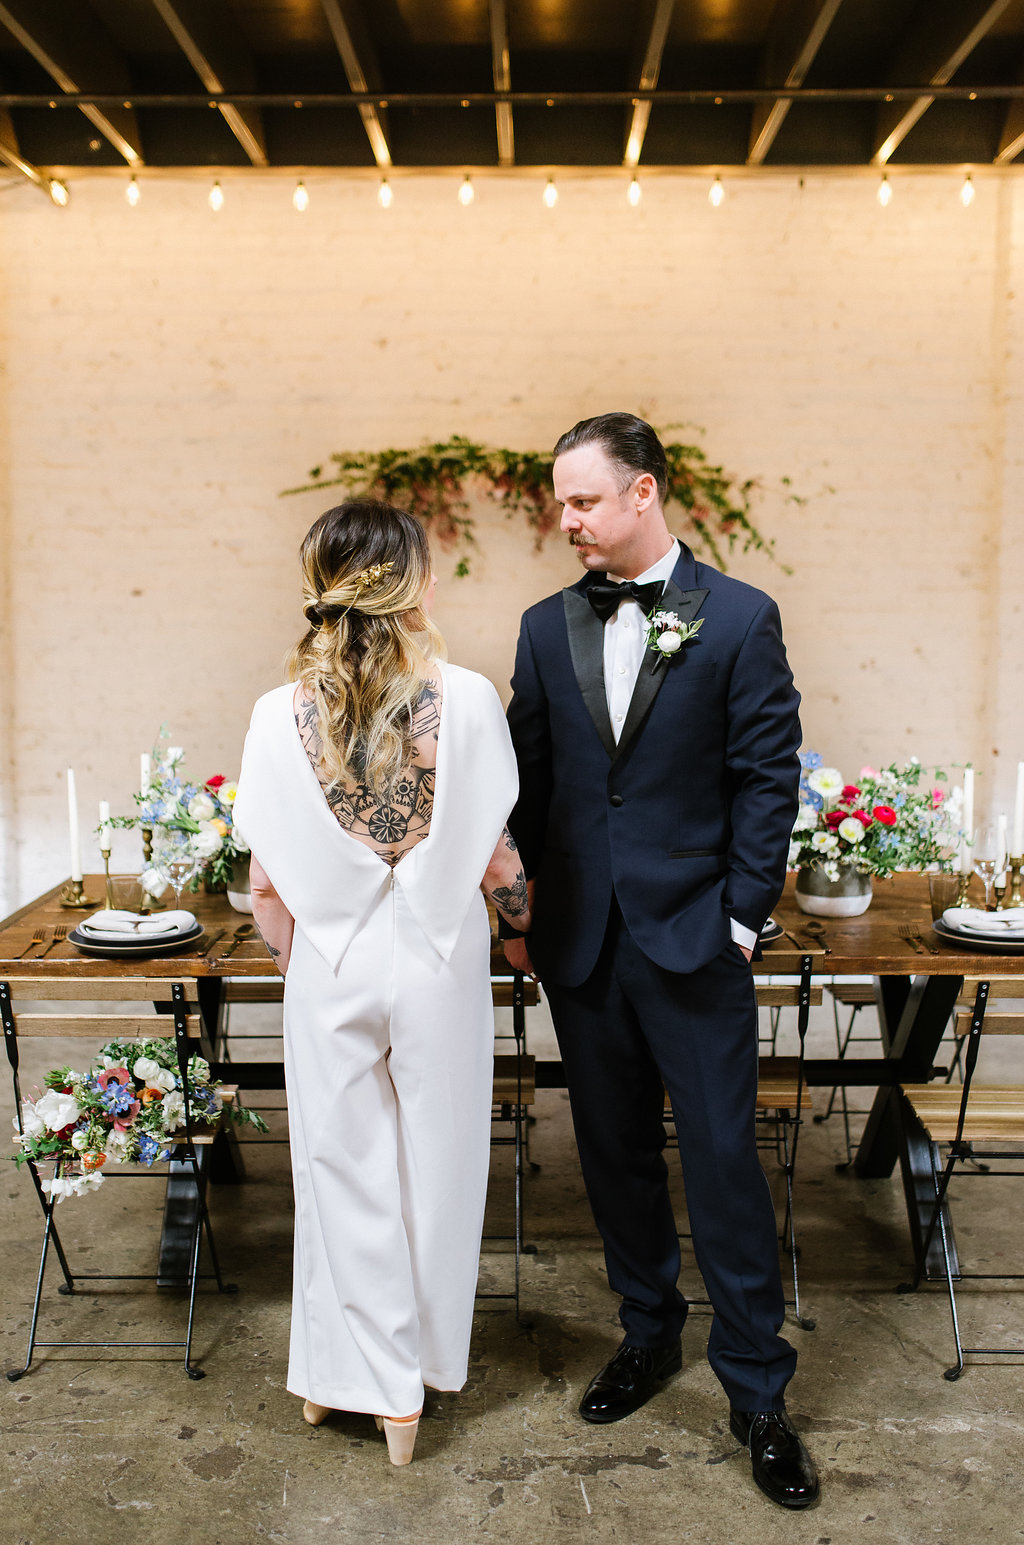 wedding jumpsuits - photo by Chelsea Dier Photography http://ruffledblog.com/modern-san-francisco-winery-elopement